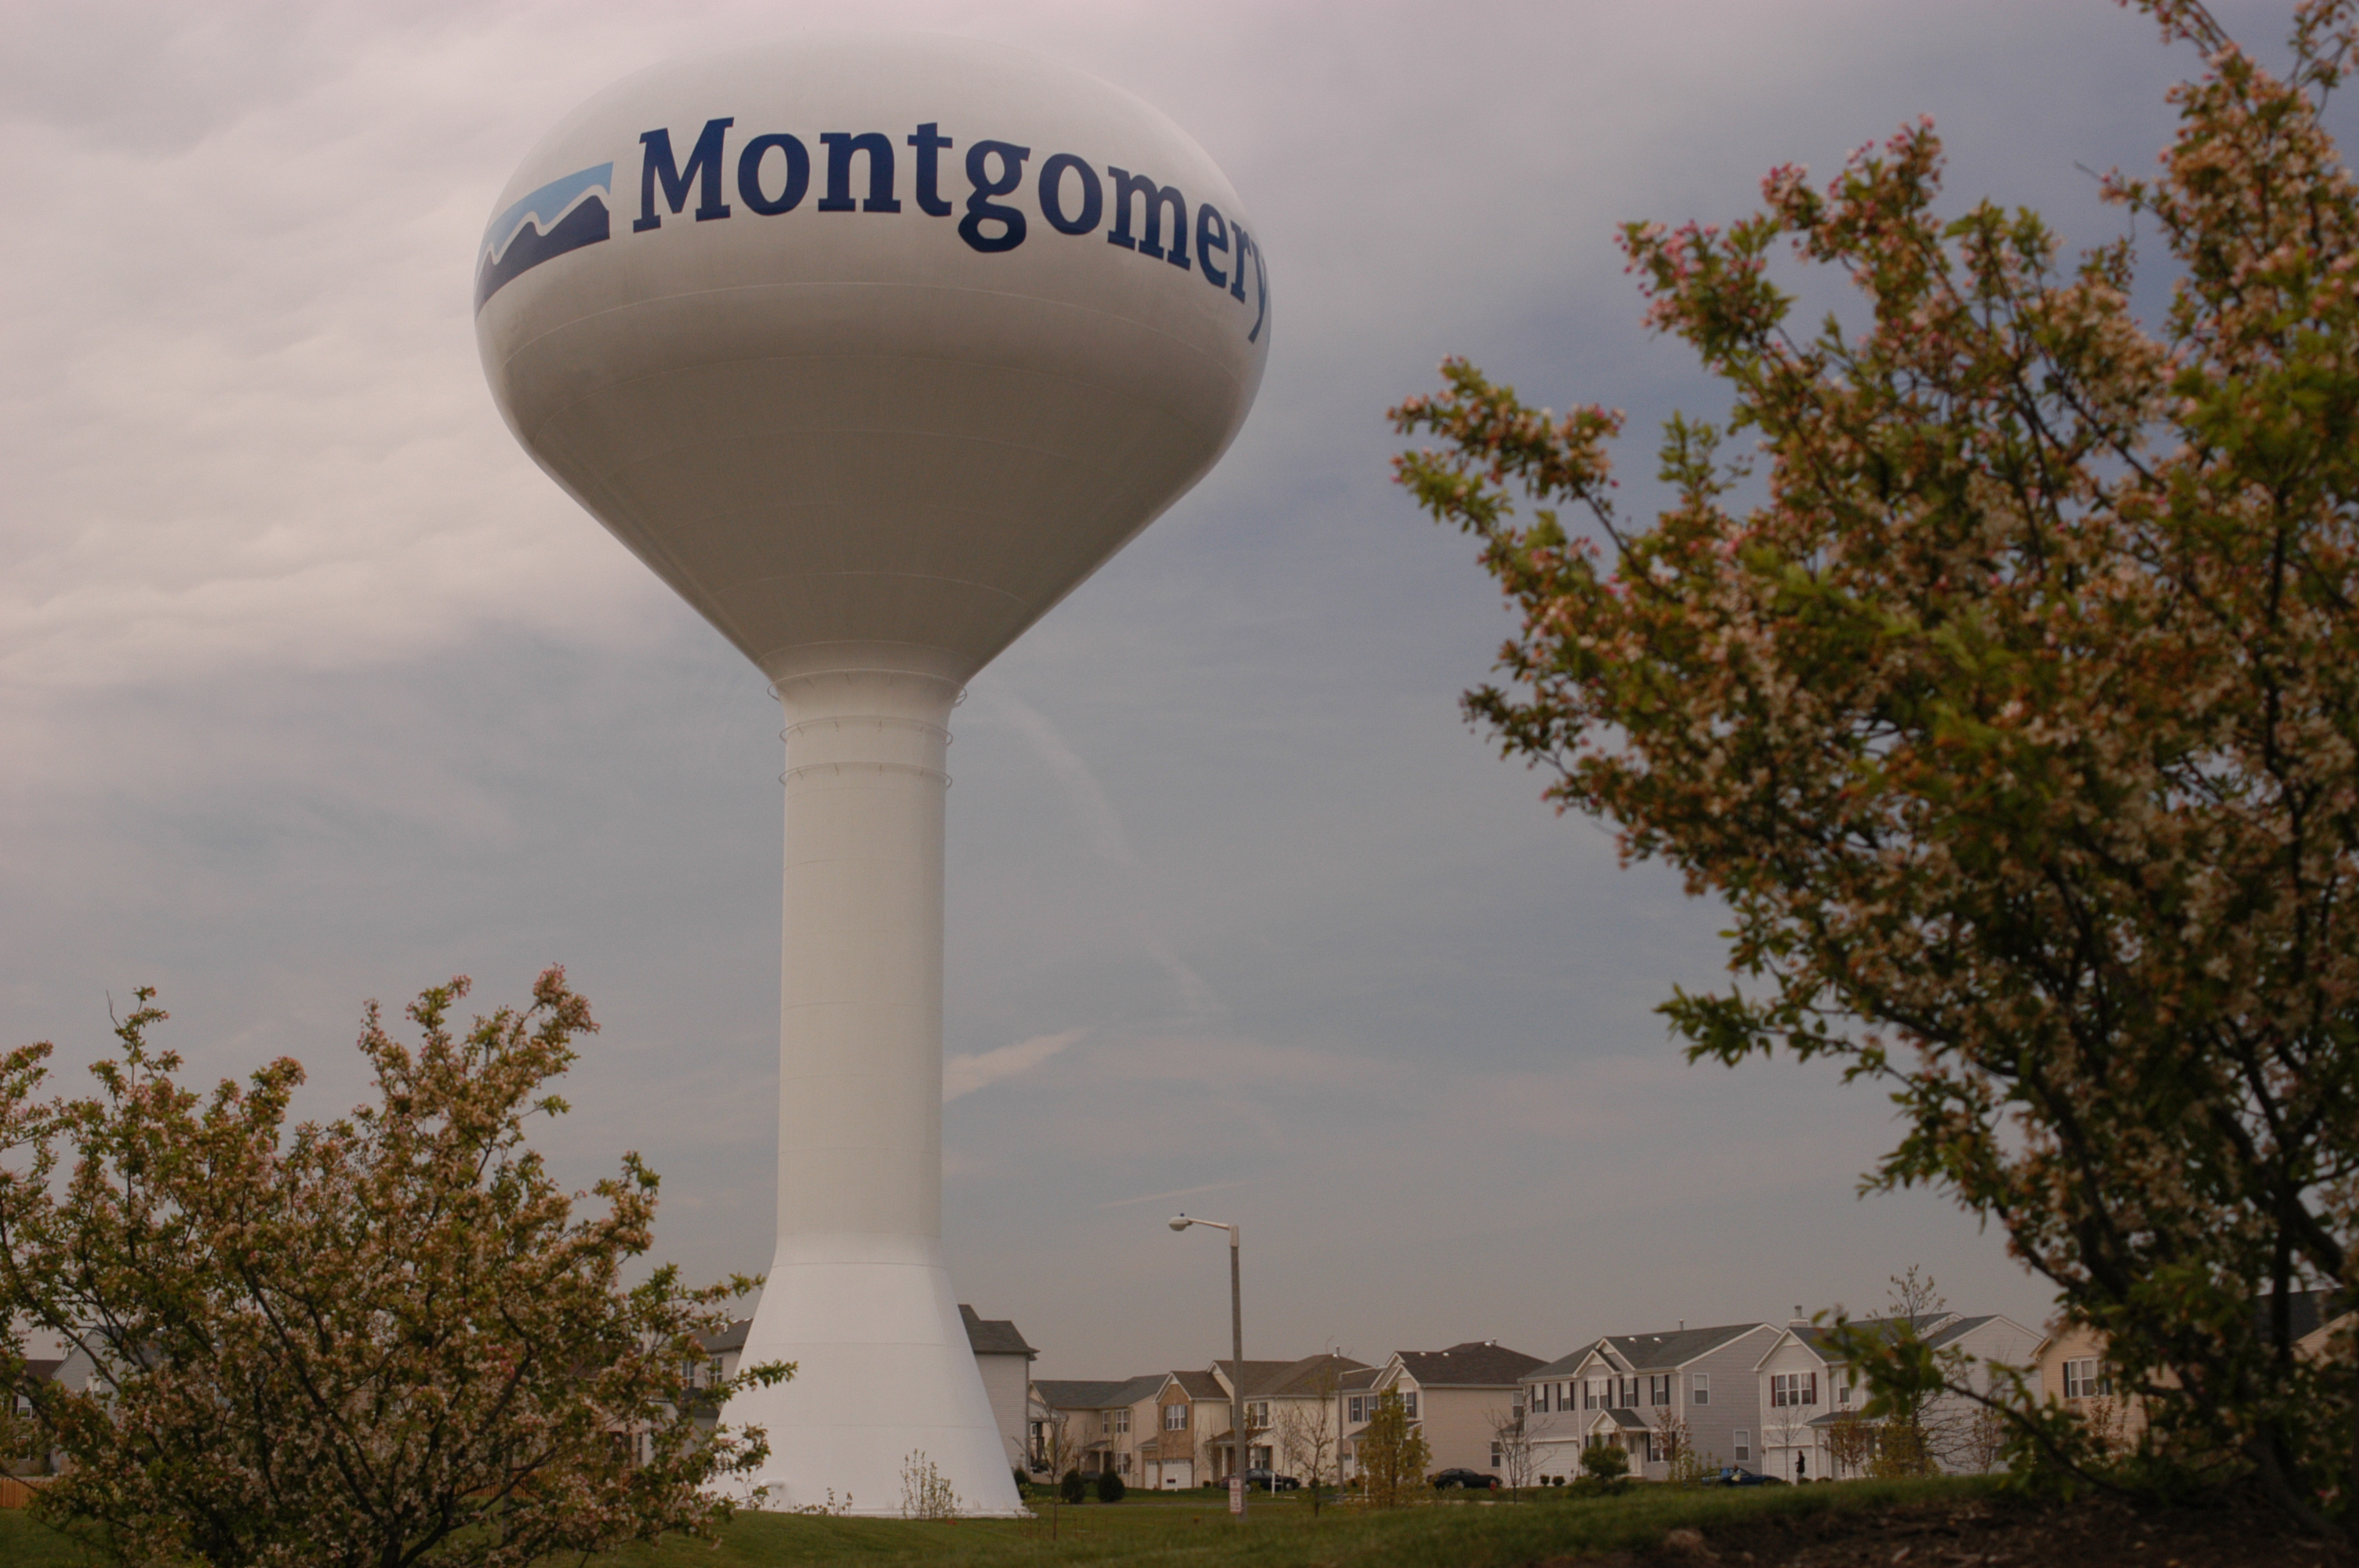 Montgomery water tower